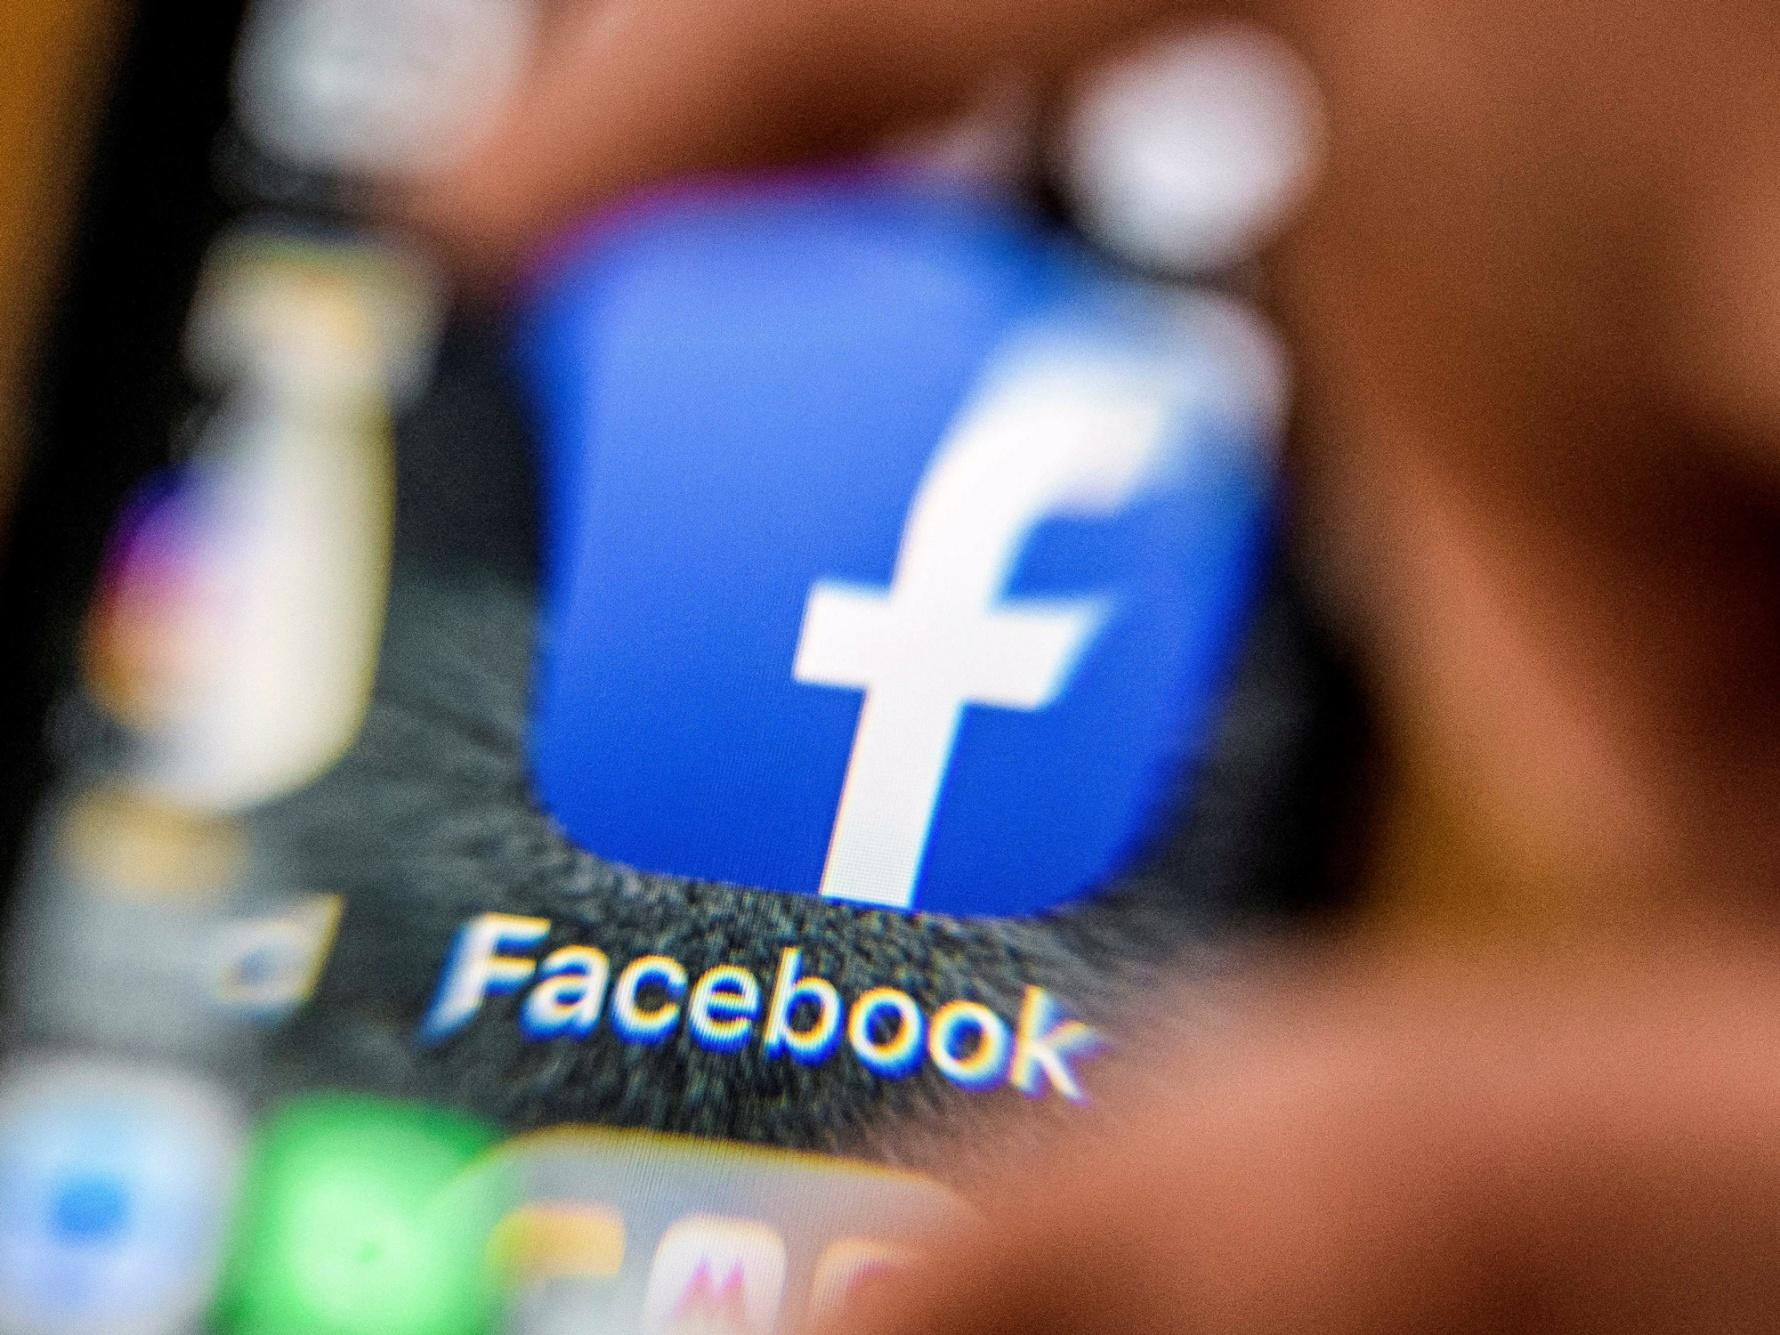 Facebook May Be Told to Censor Users' Hateful Posts Globally